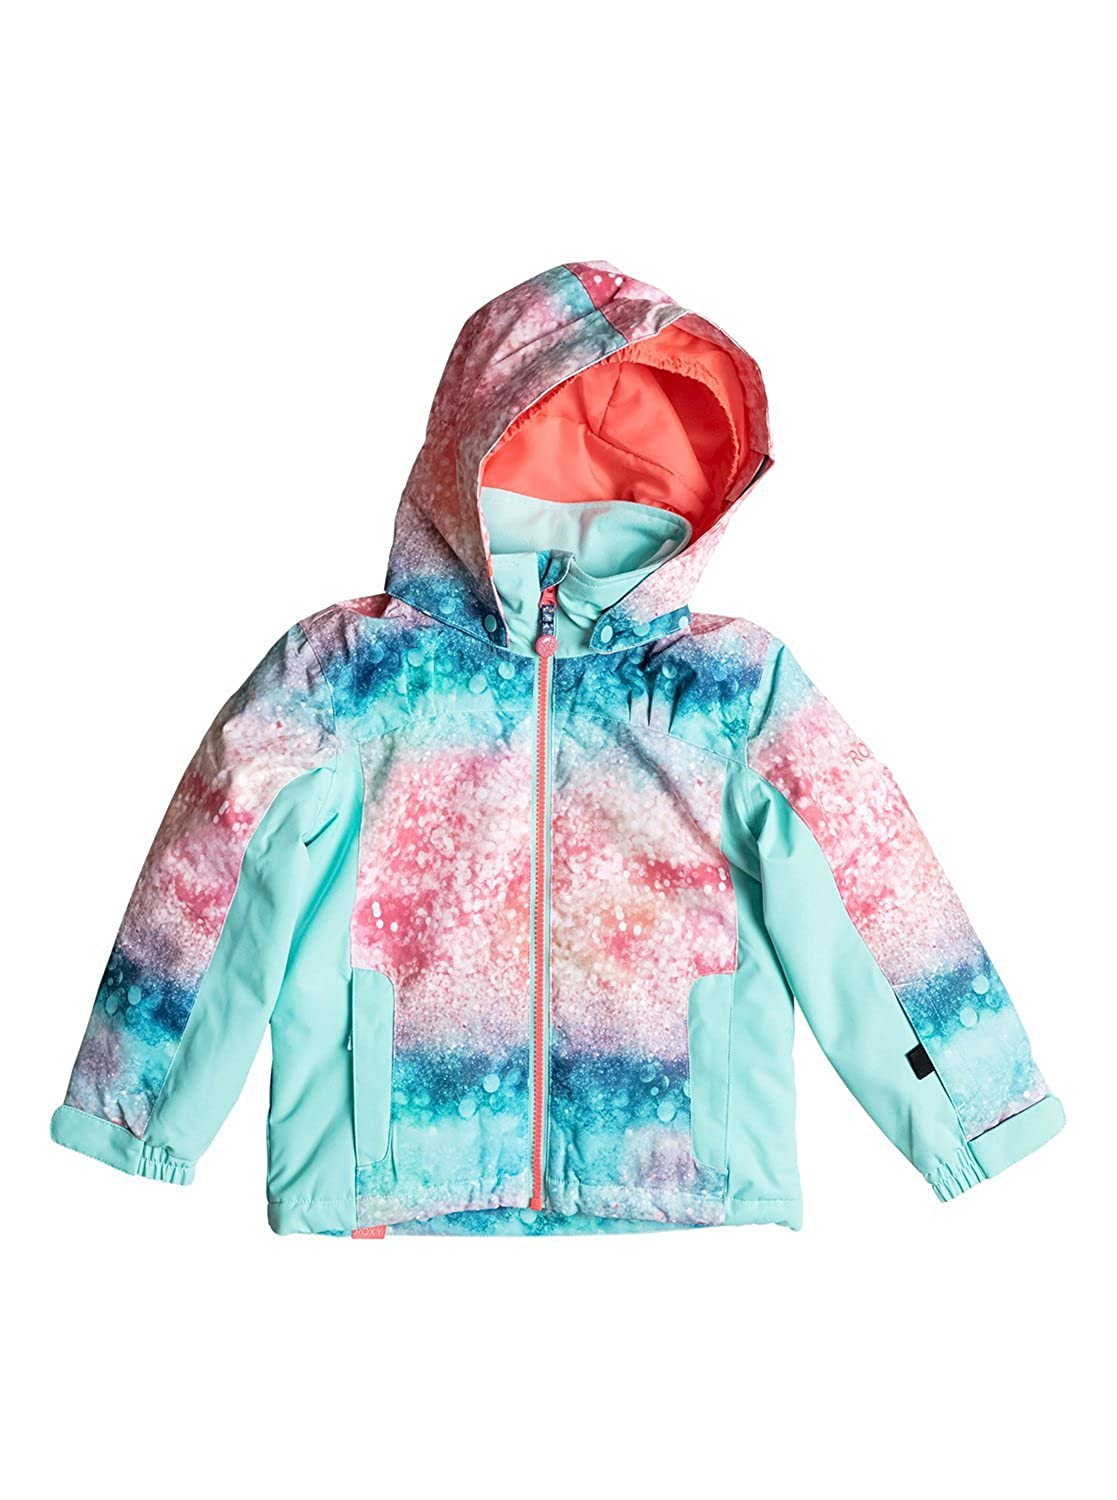 Roxy Mini Jetty - Chaqueta para Nieve para Chicas 2-7 ...